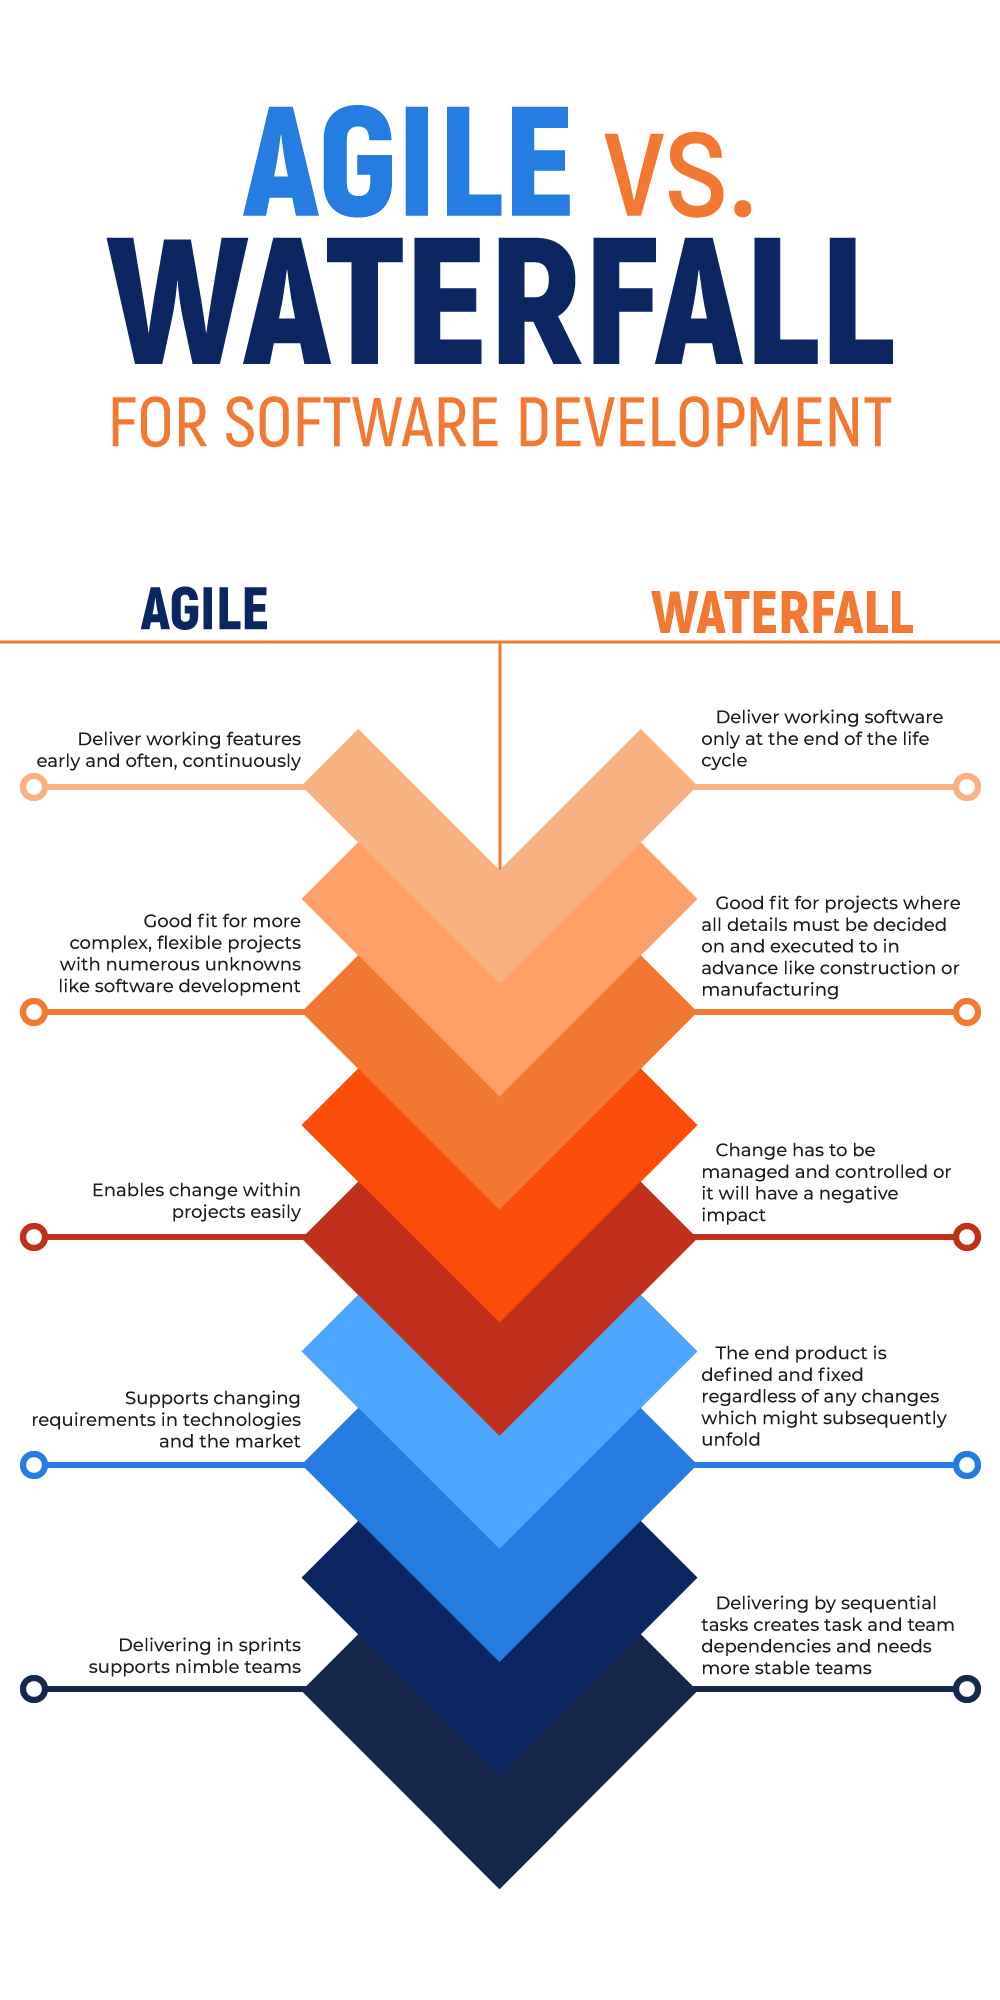 Waterfall vs Agile in software development infographic